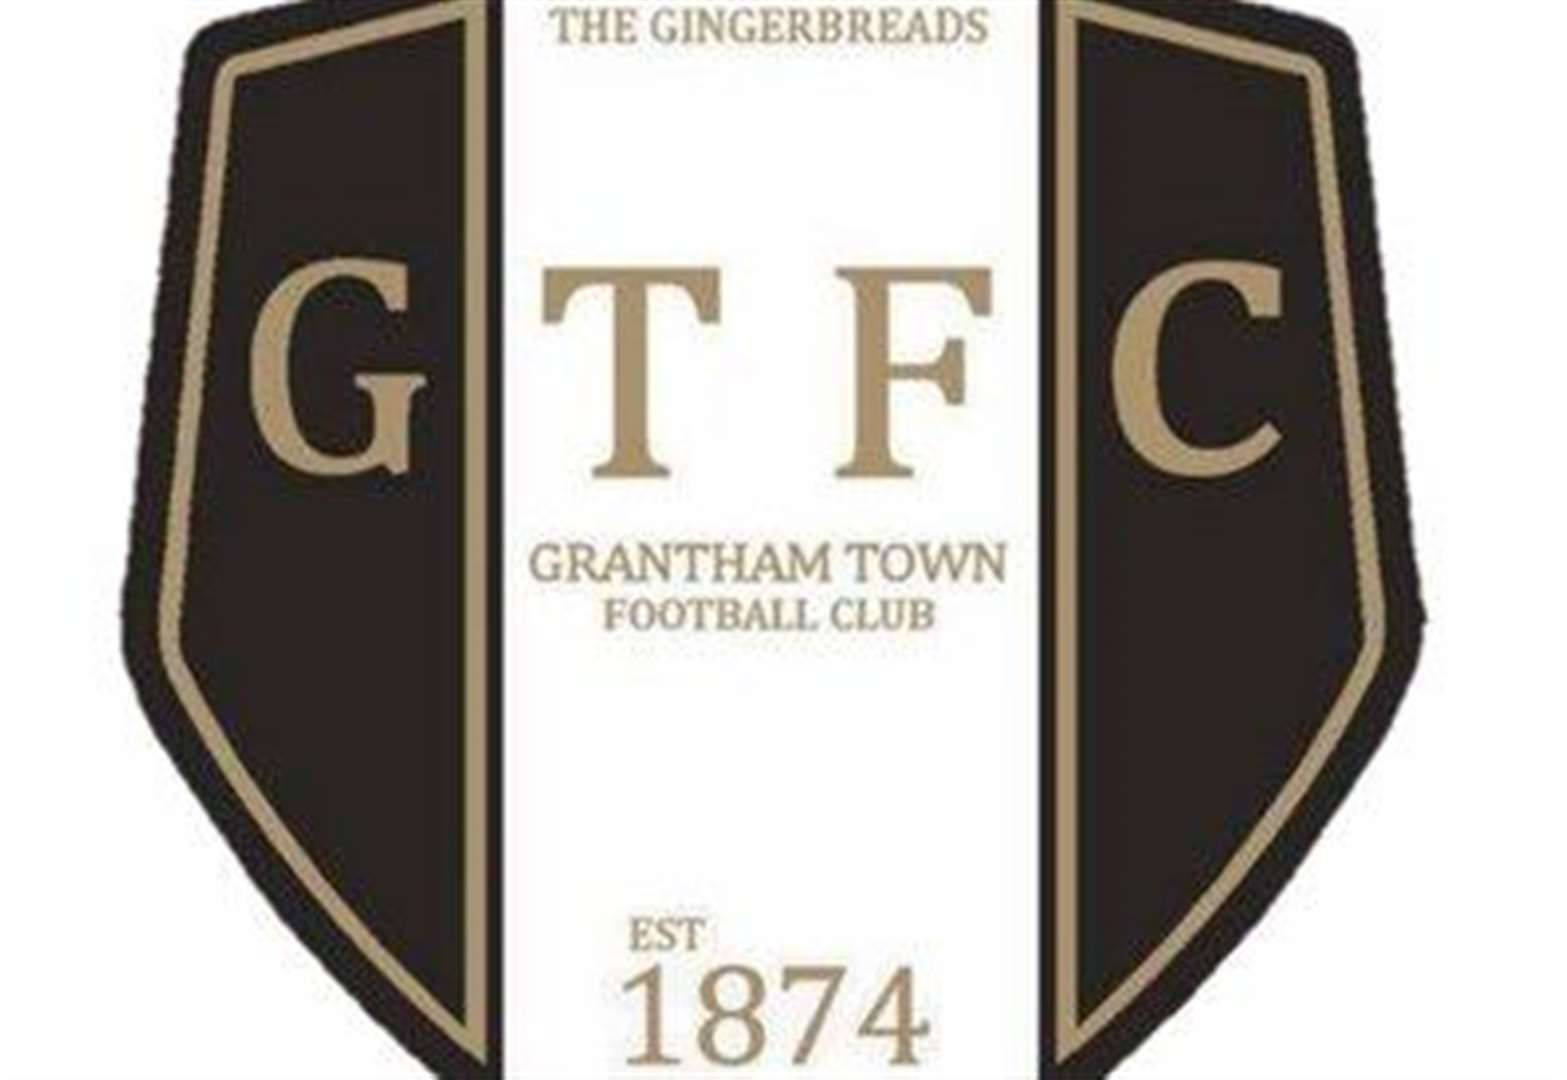 This week's Gingerbreads lotto winners